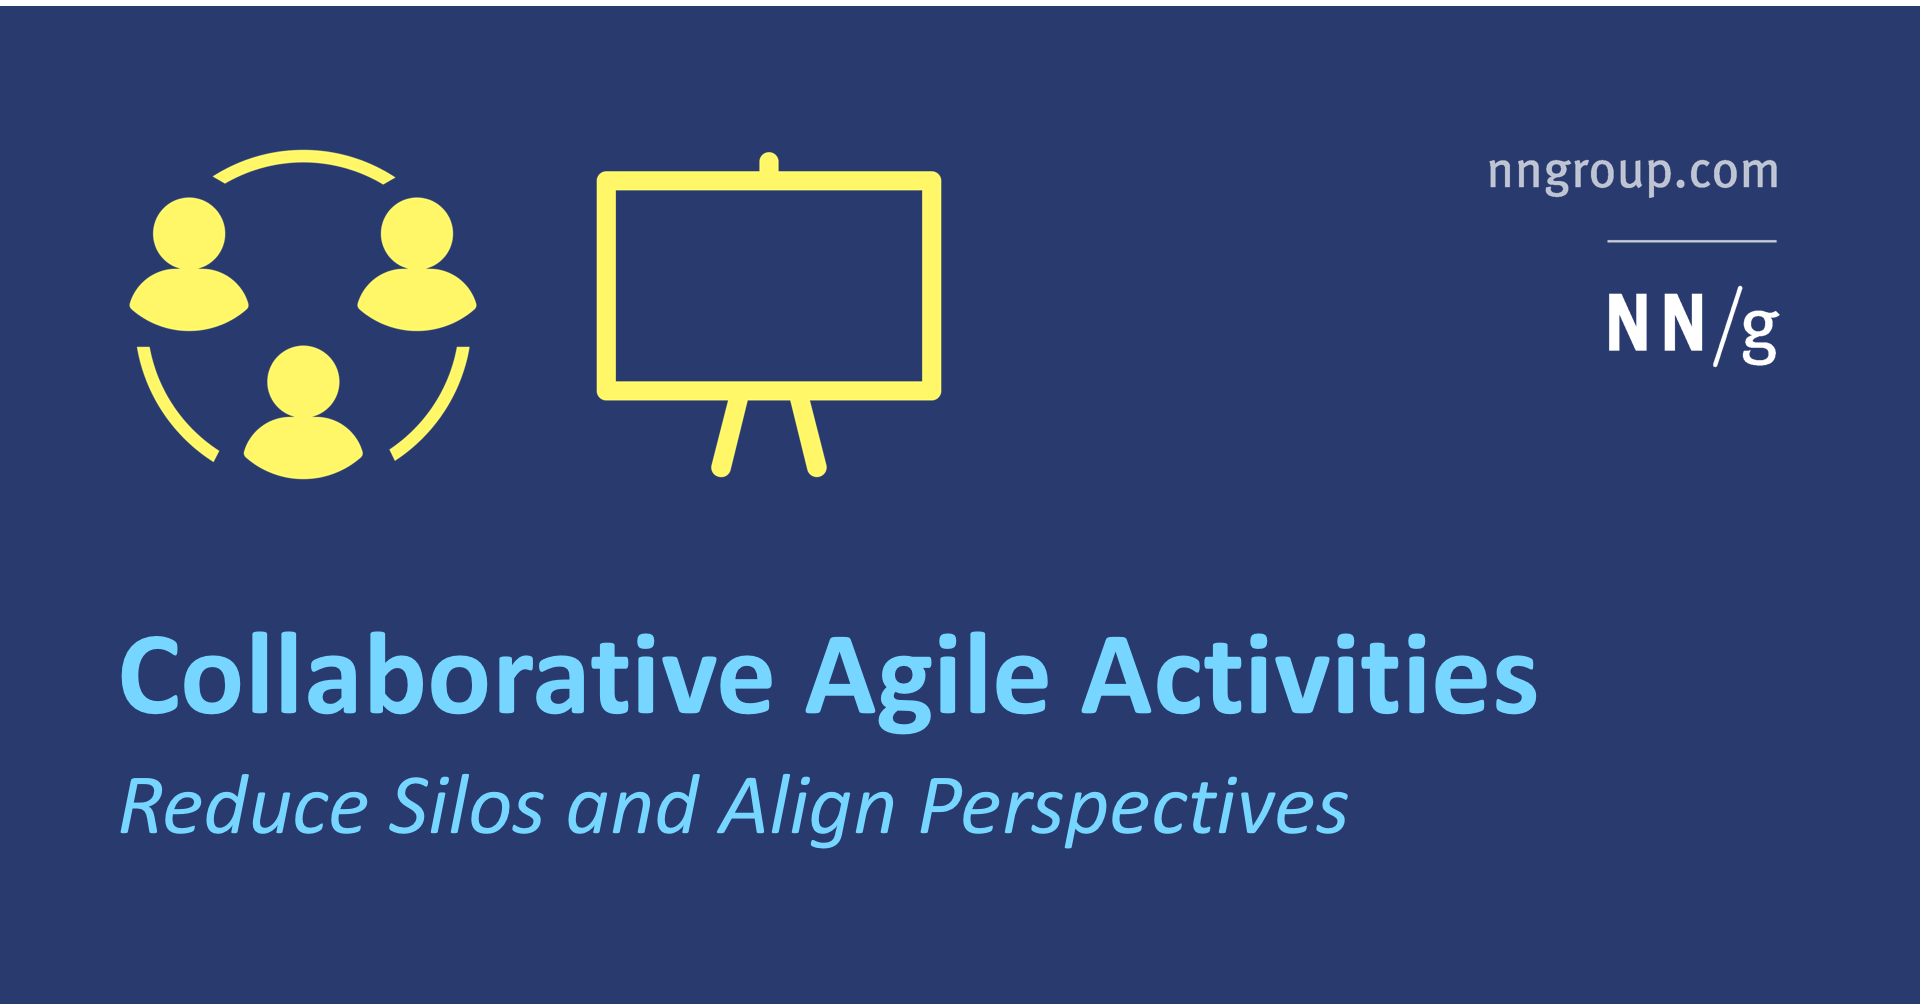 Collaborative Agile Activities Reduce Silos and Align Perspectives